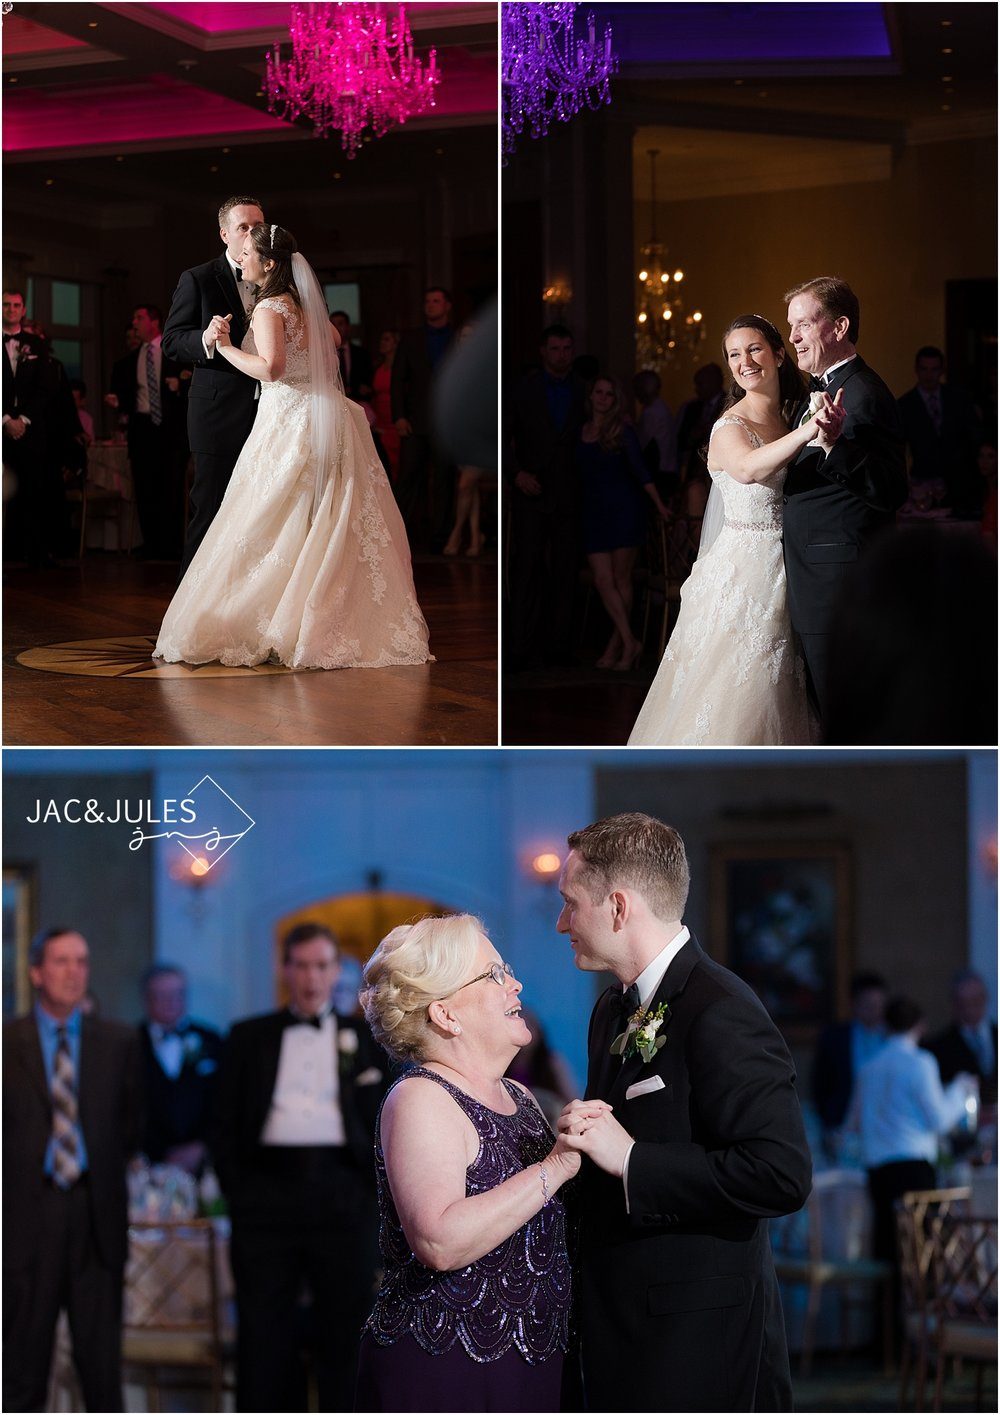 jacnjules photograph first dances at clarks landing in point pleasant nj